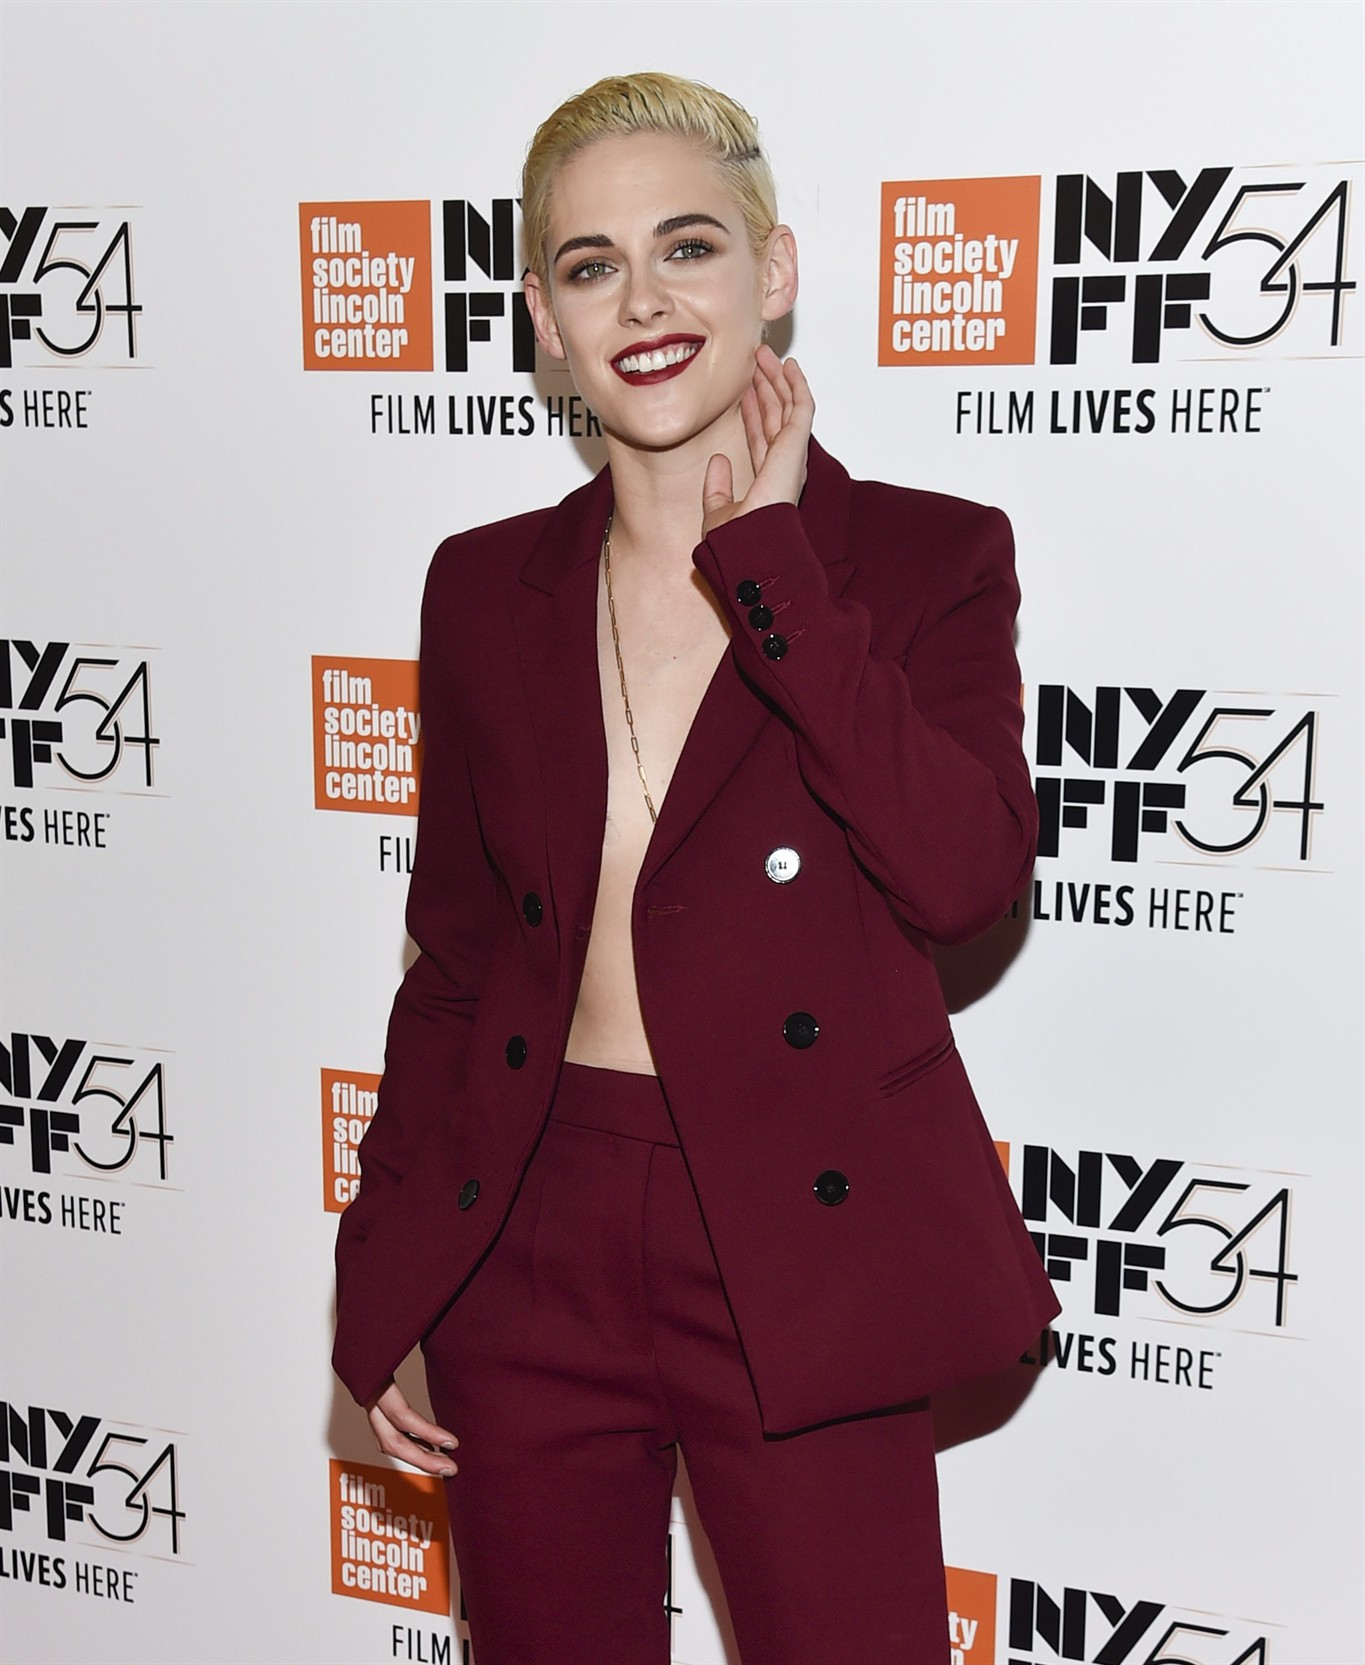 nyff films kristen stewart admits she s a workaholic  file in this oct 3 2016 file photo actress kristen stewart attends a special screening of certain women during the 54th new york film festival in new